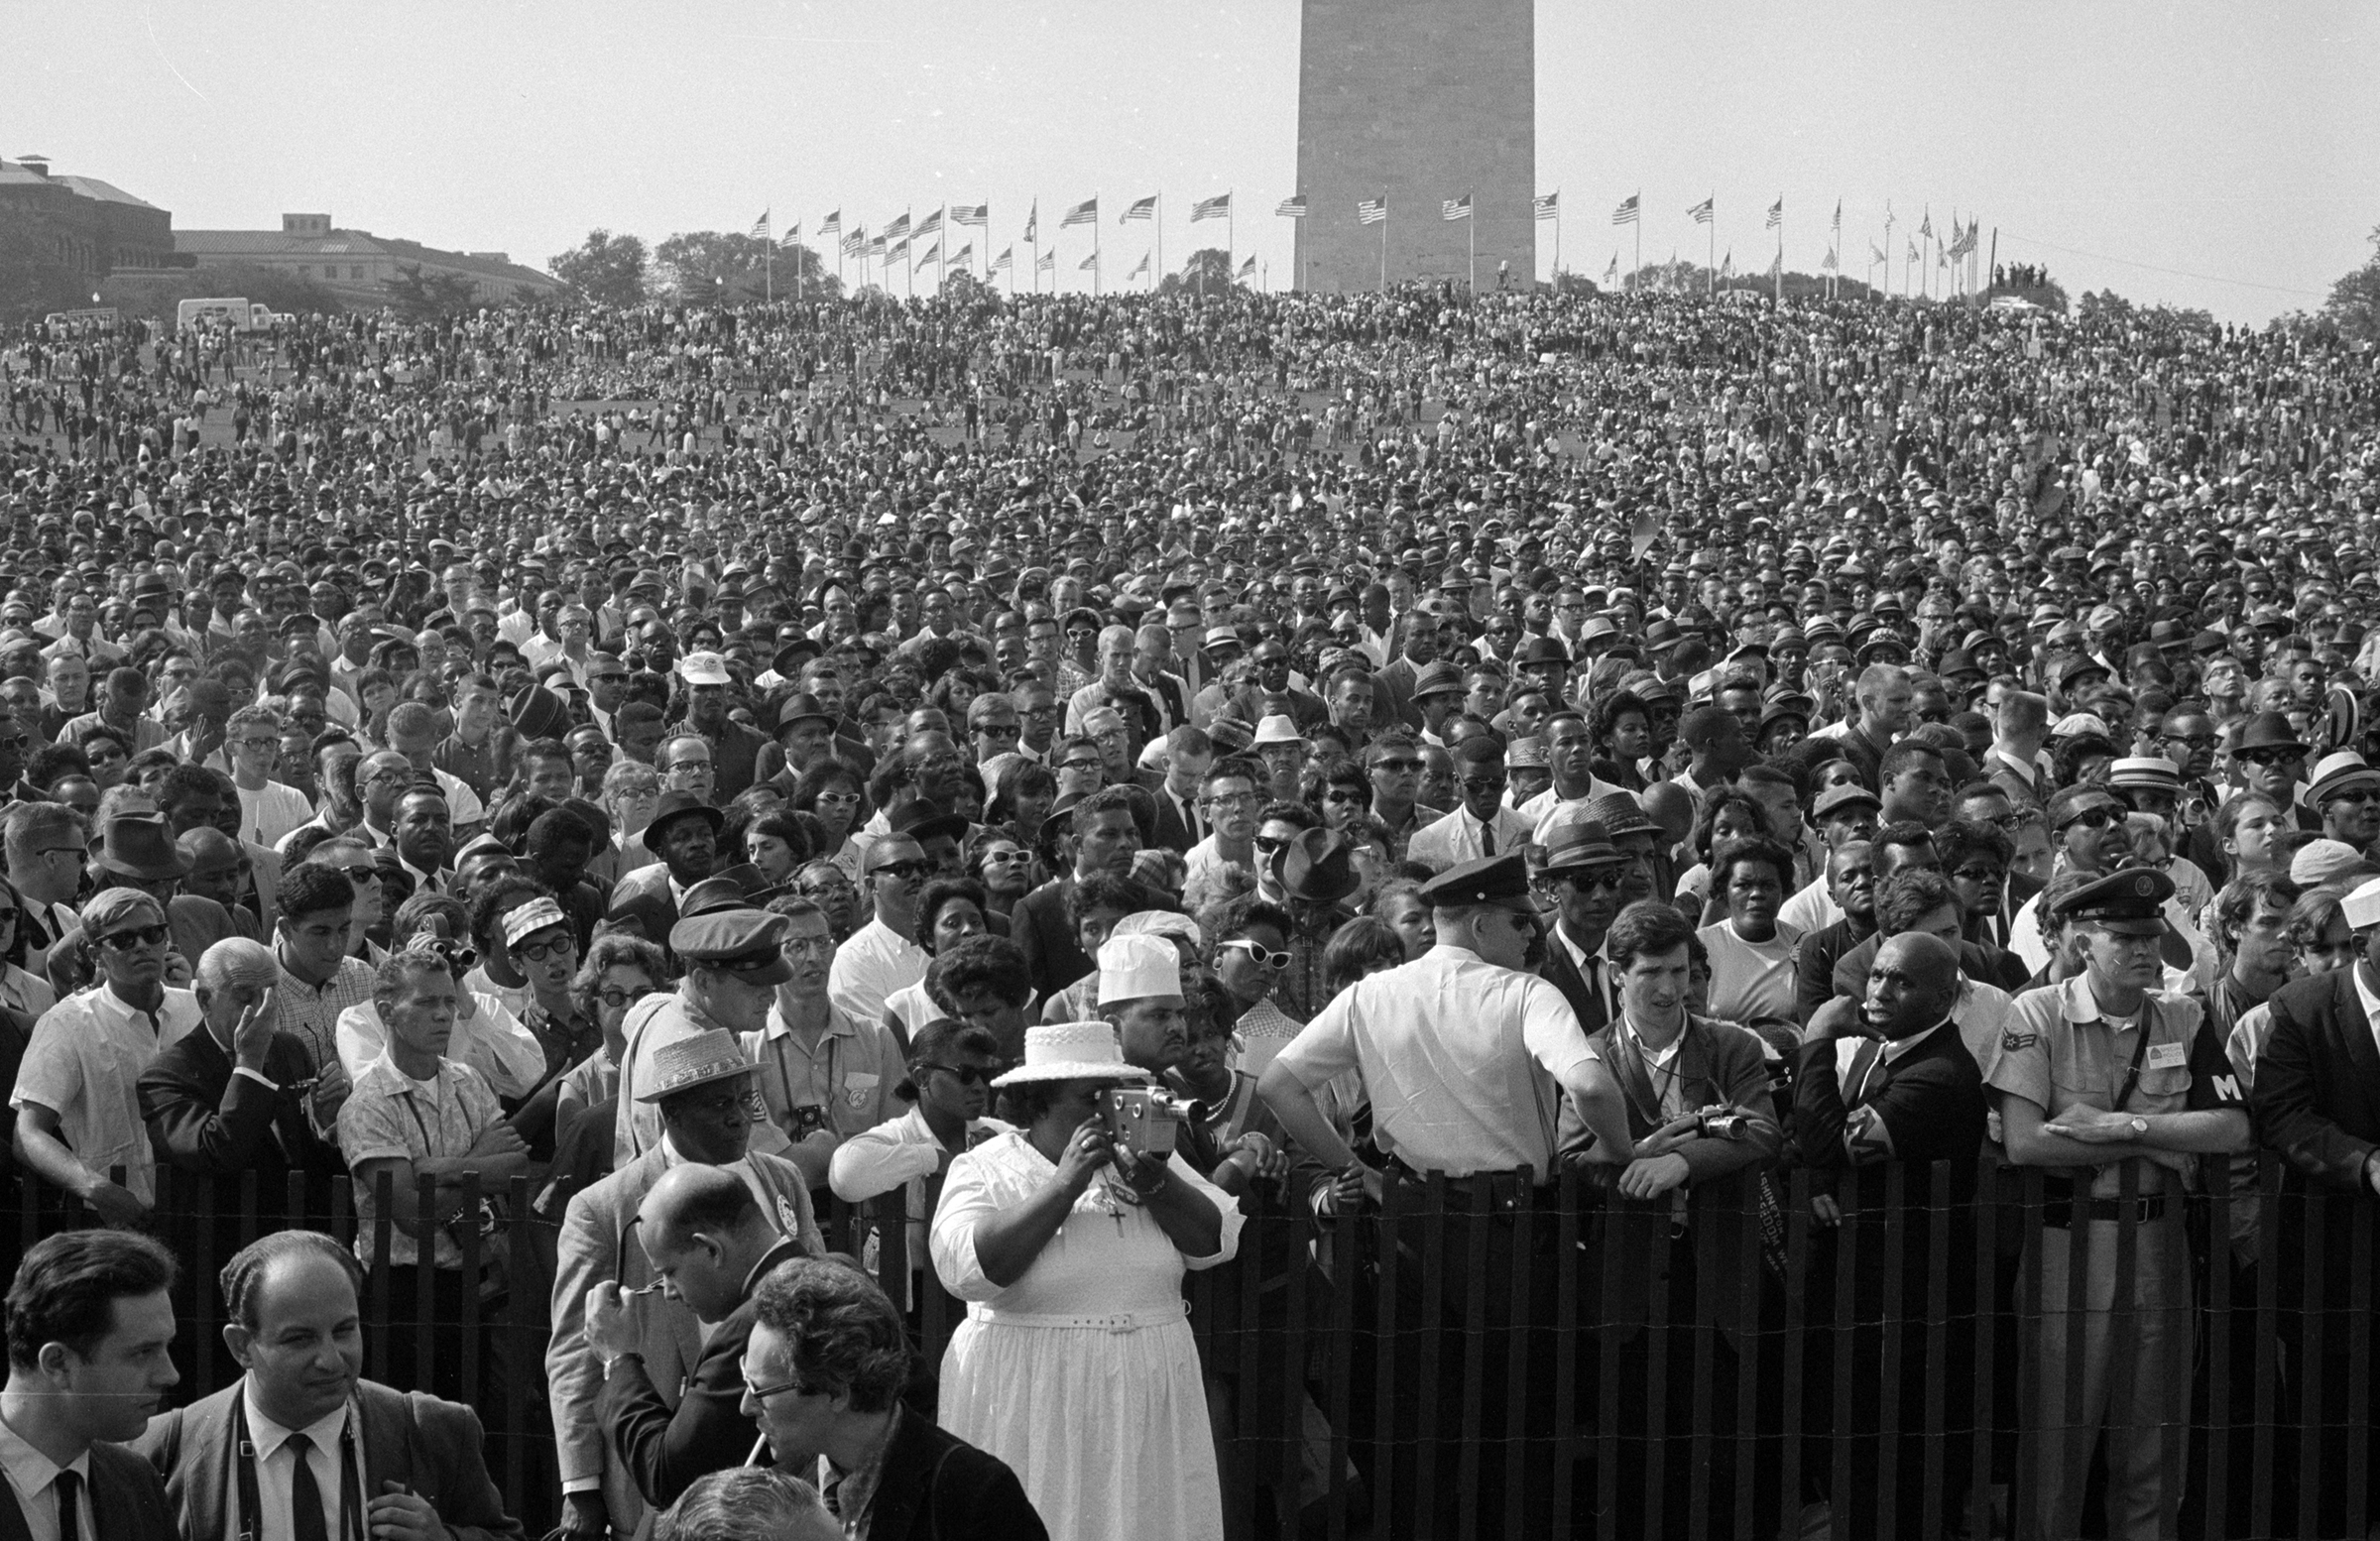 Crowd at the August 1963 March on Washington, Courtesy of the Library of Congress